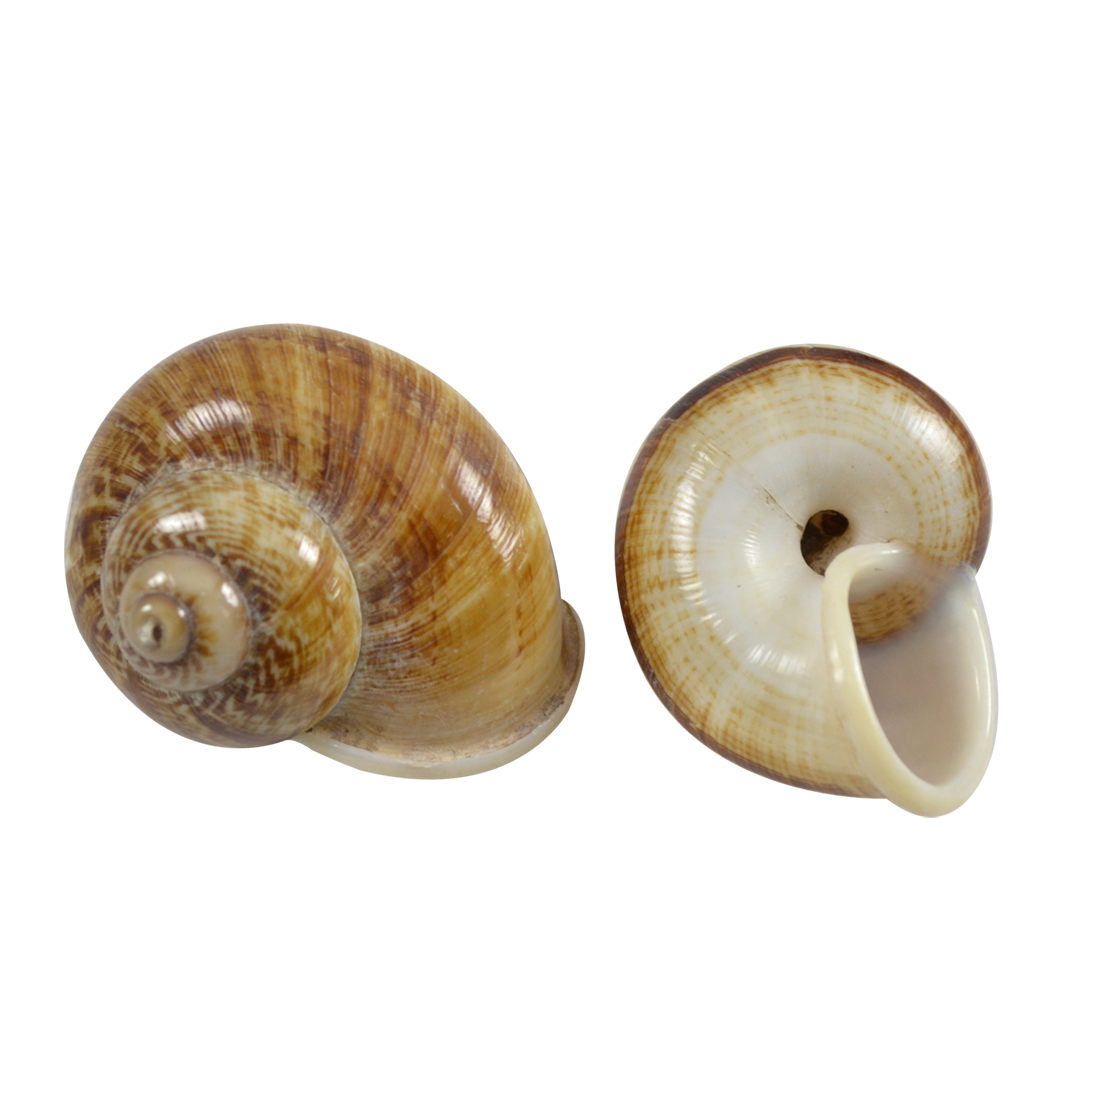 Shell transparent pearlescent. Brown mountain snail